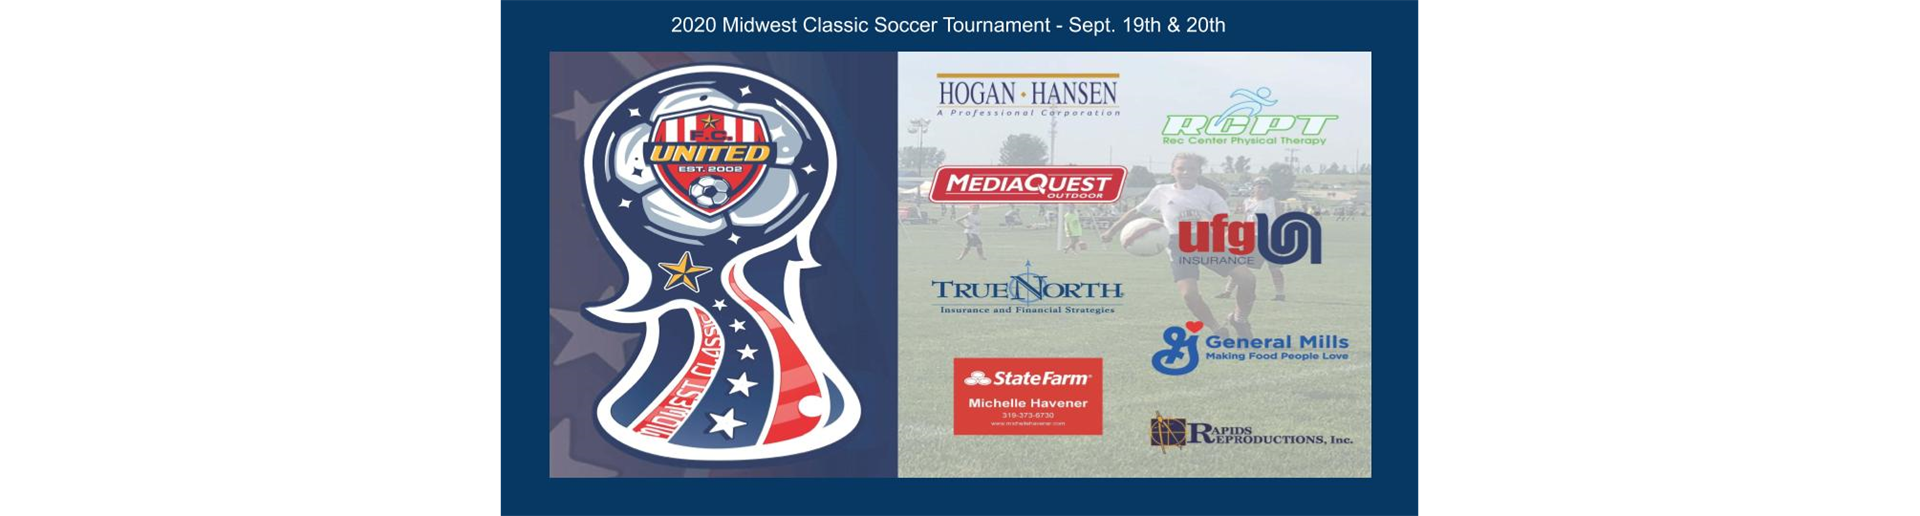 Fall 2020 Midwest Classic Soccer Tournament